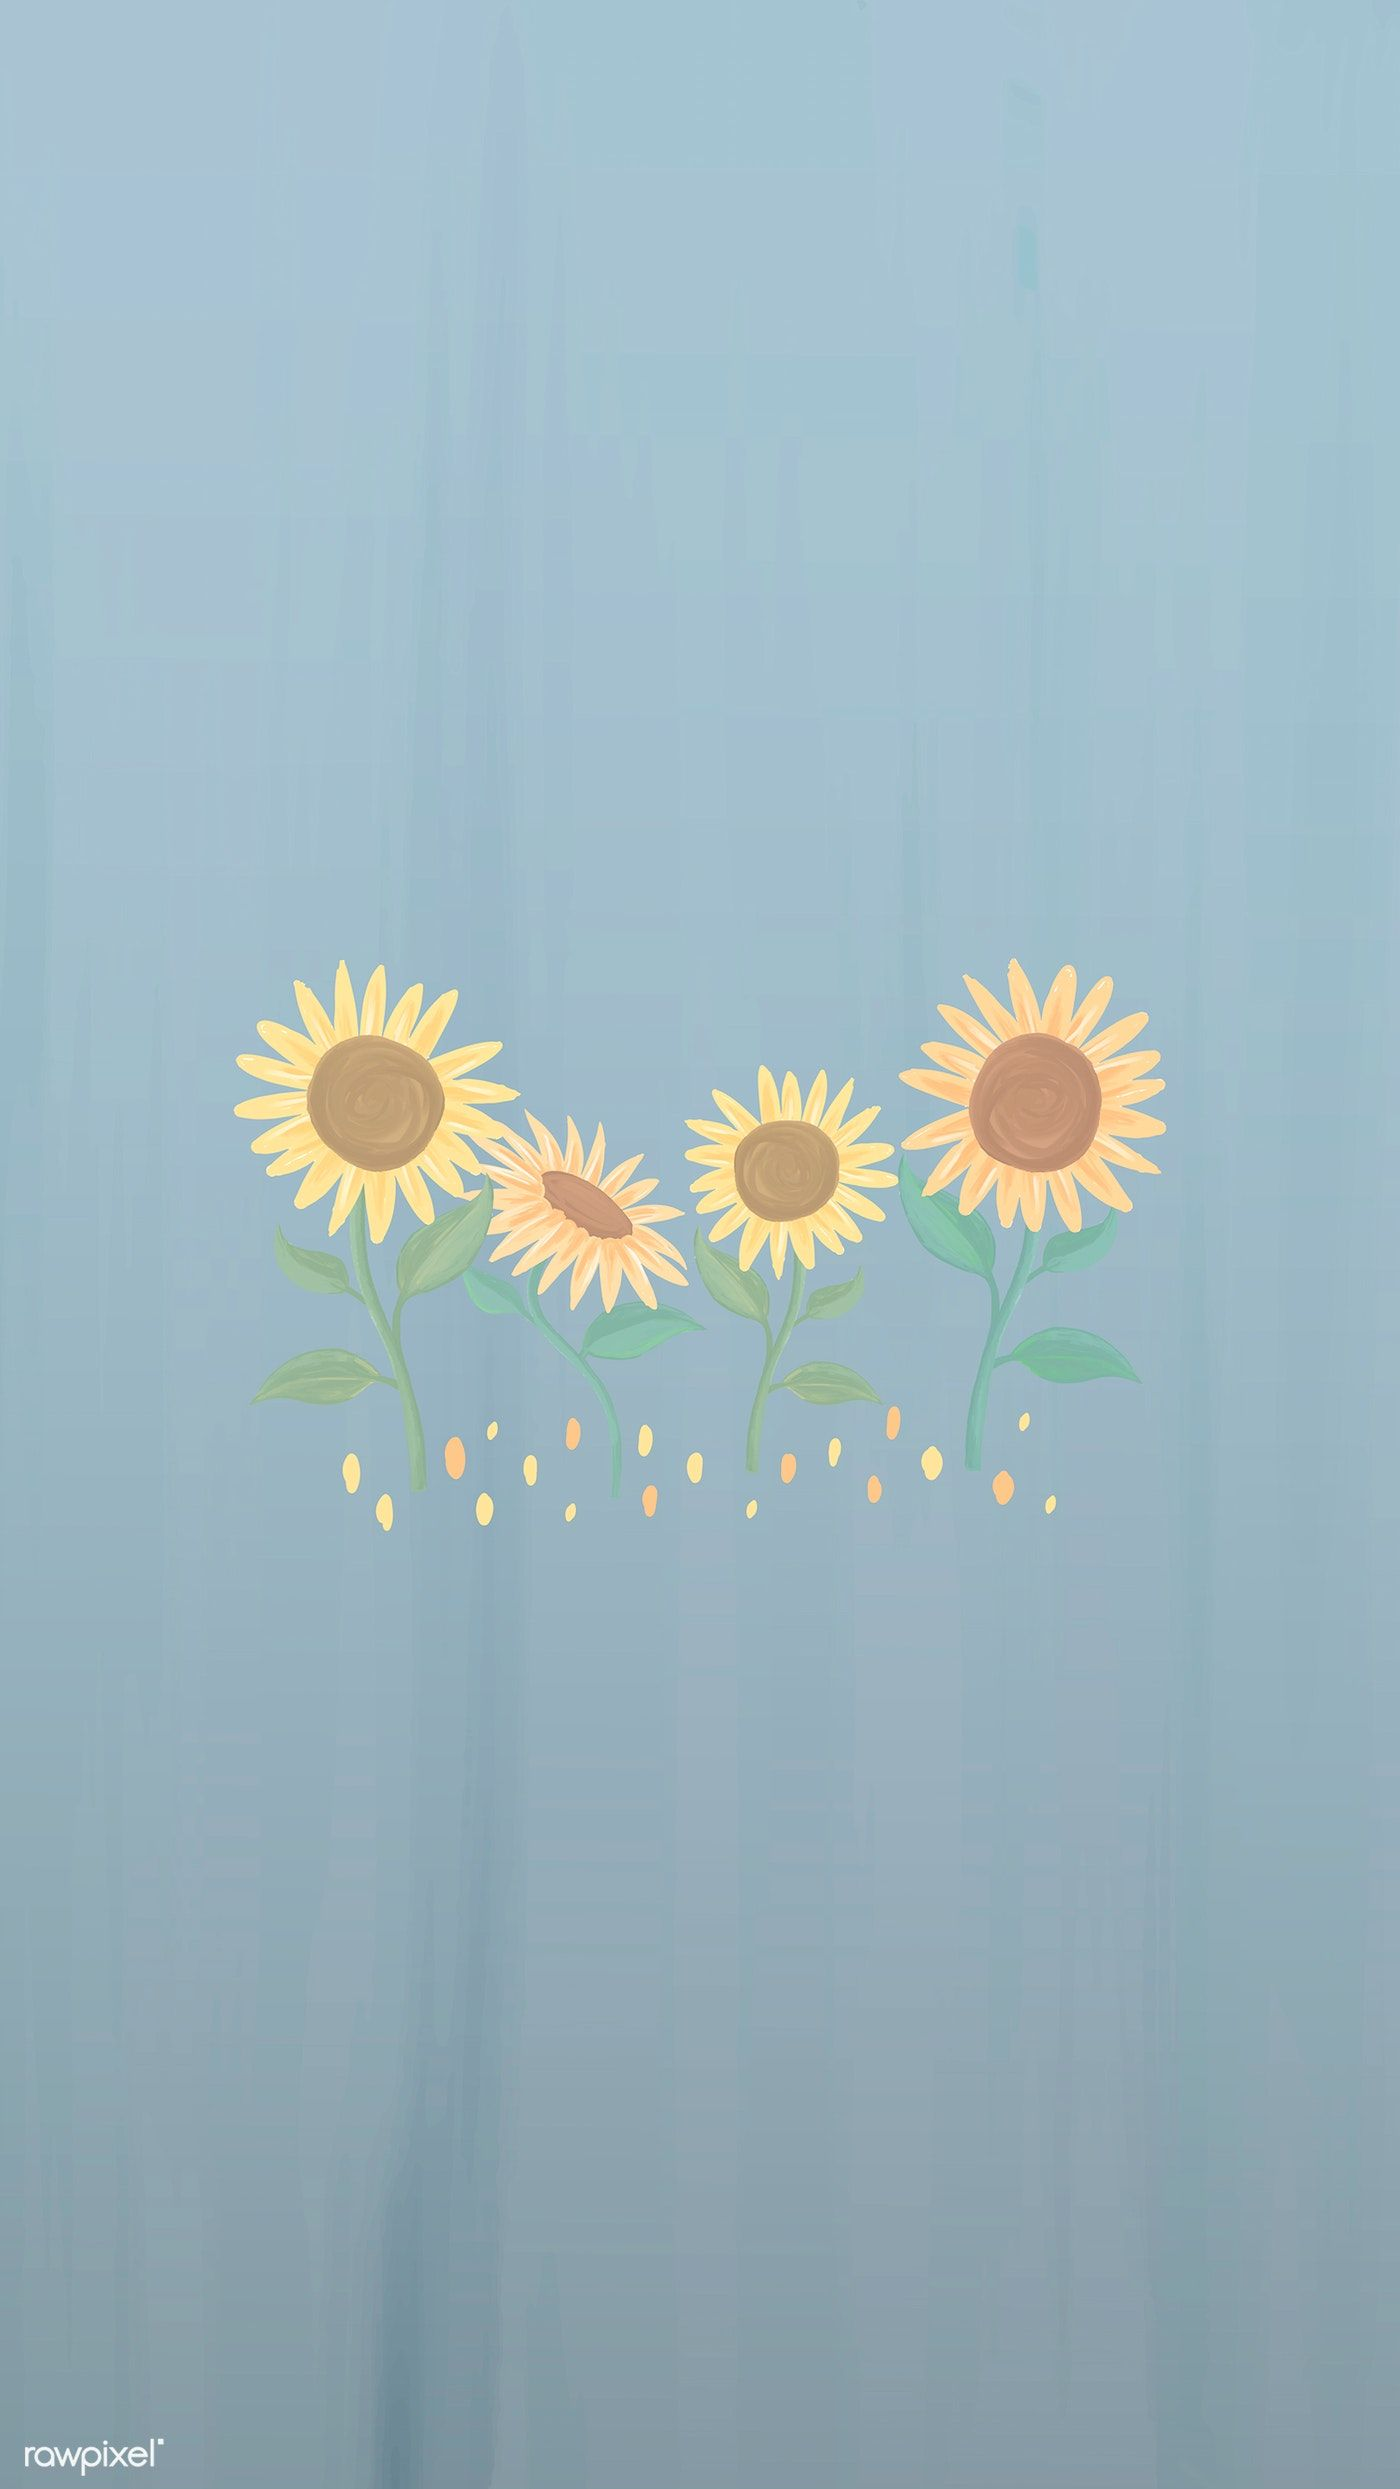 Hand Drawn Sunflower Mobile Phone Wallpaper Vector Premium Image By Rawpixel Com Man In 2020 Sunflower Wallpaper Sunflower Iphone Wallpaper Pretty Wallpaper Iphone